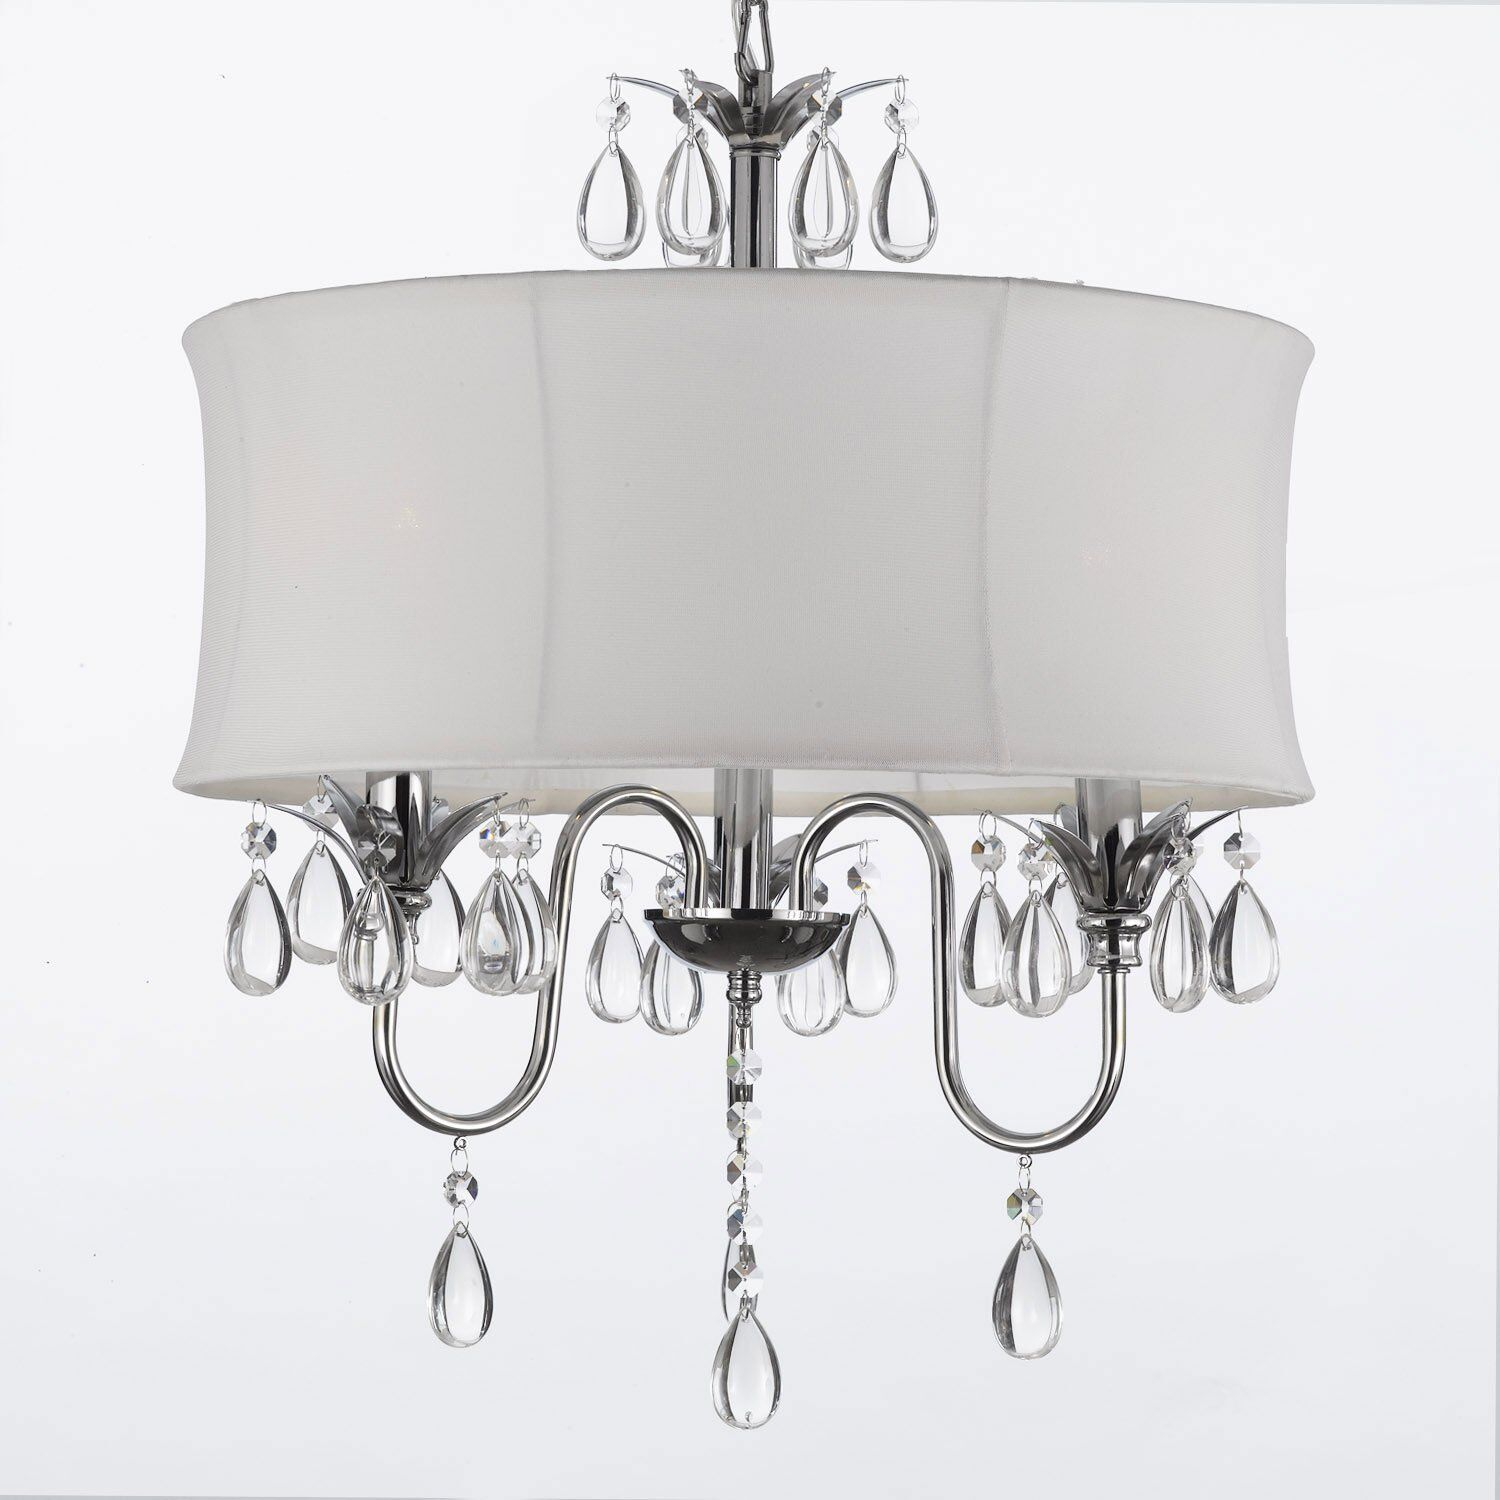 White Drum Shade Crystal Ceiling Chandelier Pendant Light